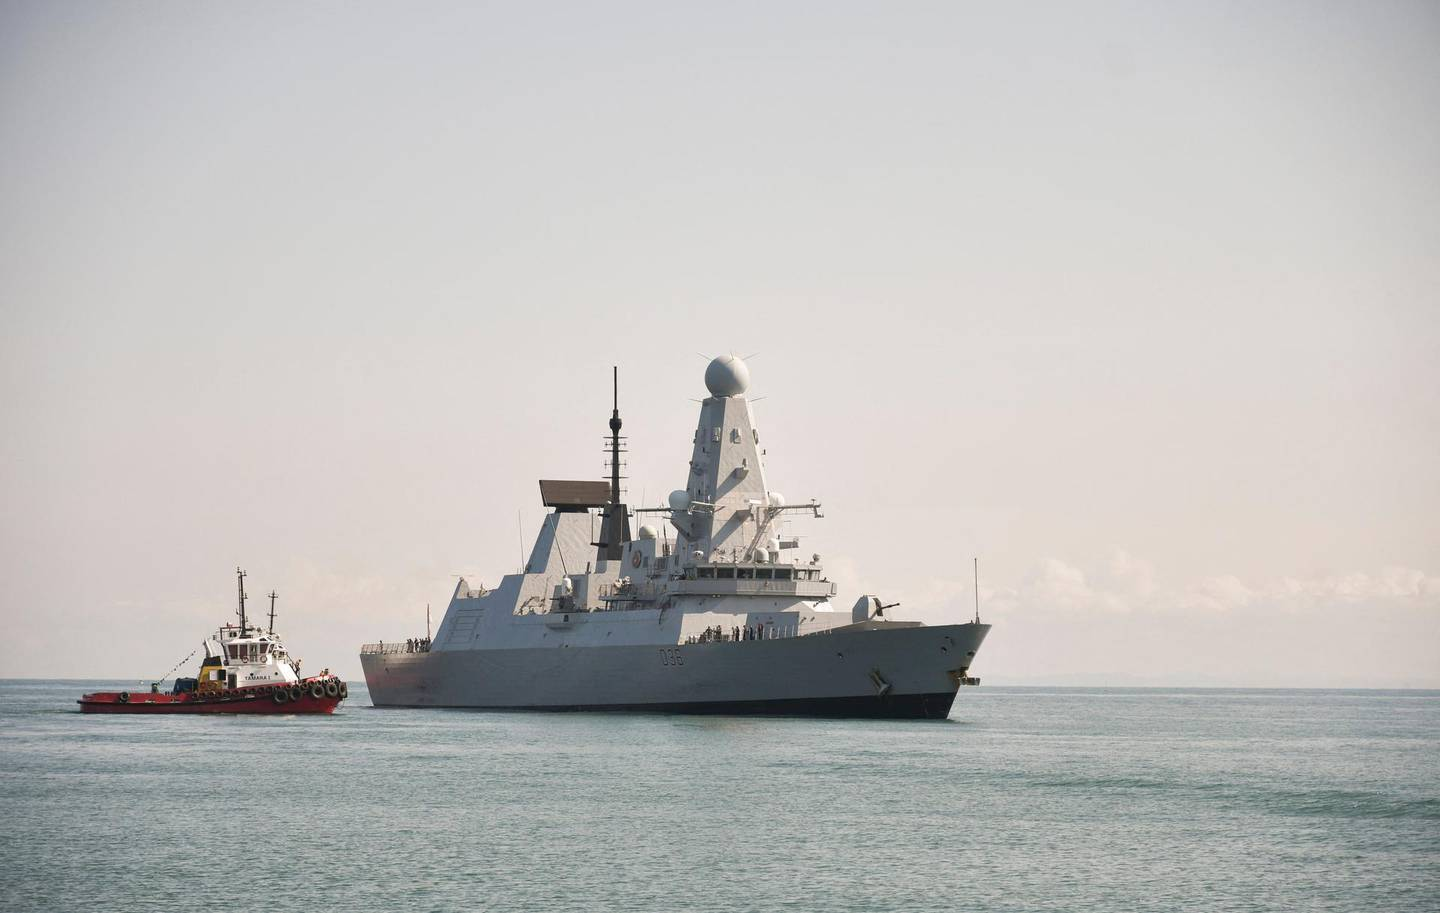 """This handout photo taken on June 26, 2021 and released by British Embassy in Georgia, shows the British Royal Navy destroyer HMS Defender arrives in the Black Sea port of Batumi on June 26, 2021.  British navy destroyer, HMS Defender, makes a port call in Georgia's Black Sea port of Batumi for joint exercises with the NATO-aspirant country's coast guard, according to the Royal Navy, days after Russia claimed it had fired warning shots at the warship in the coastal waters of Crimea. - RESTRICTED TO EDITORIAL USE - MANDATORY CREDIT """"AFP PHOTO /British Embassy in Georgia """" - NO MARKETING - NO ADVERTISING CAMPAIGNS - DISTRIBUTED AS A SERVICE TO CLIENTS  / AFP / Irakli GEDENIDZE / RESTRICTED TO EDITORIAL USE - MANDATORY CREDIT """"AFP PHOTO /British Embassy in Georgia """" - NO MARKETING - NO ADVERTISING CAMPAIGNS - DISTRIBUTED AS A SERVICE TO CLIENTS"""